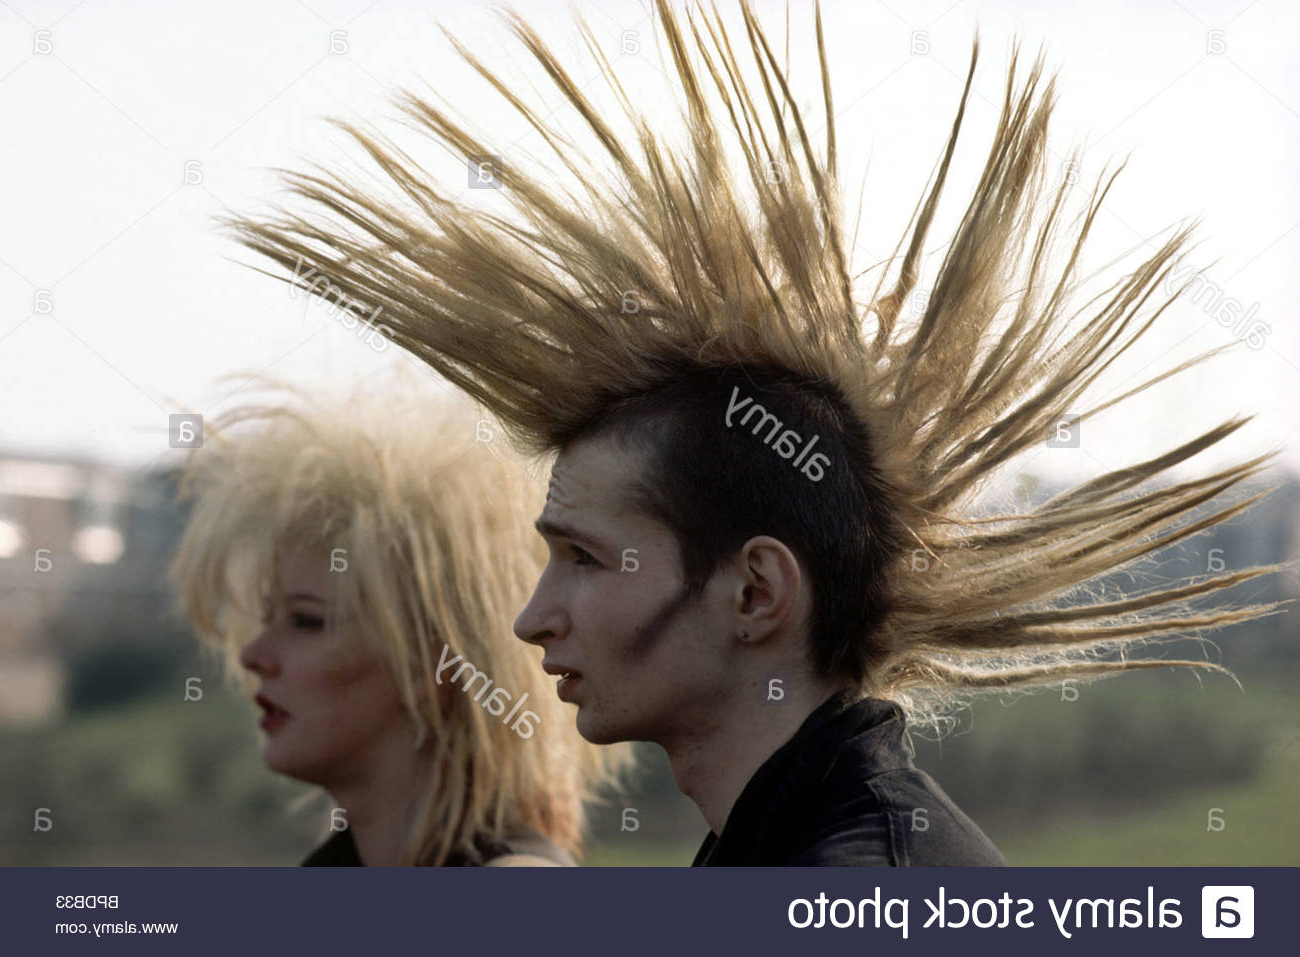 Newest Blonde Teased Mohawk Hairstyles Inside Teased Hair Stock Photos & Teased Hair Stock Images – Alamy (View 11 of 20)